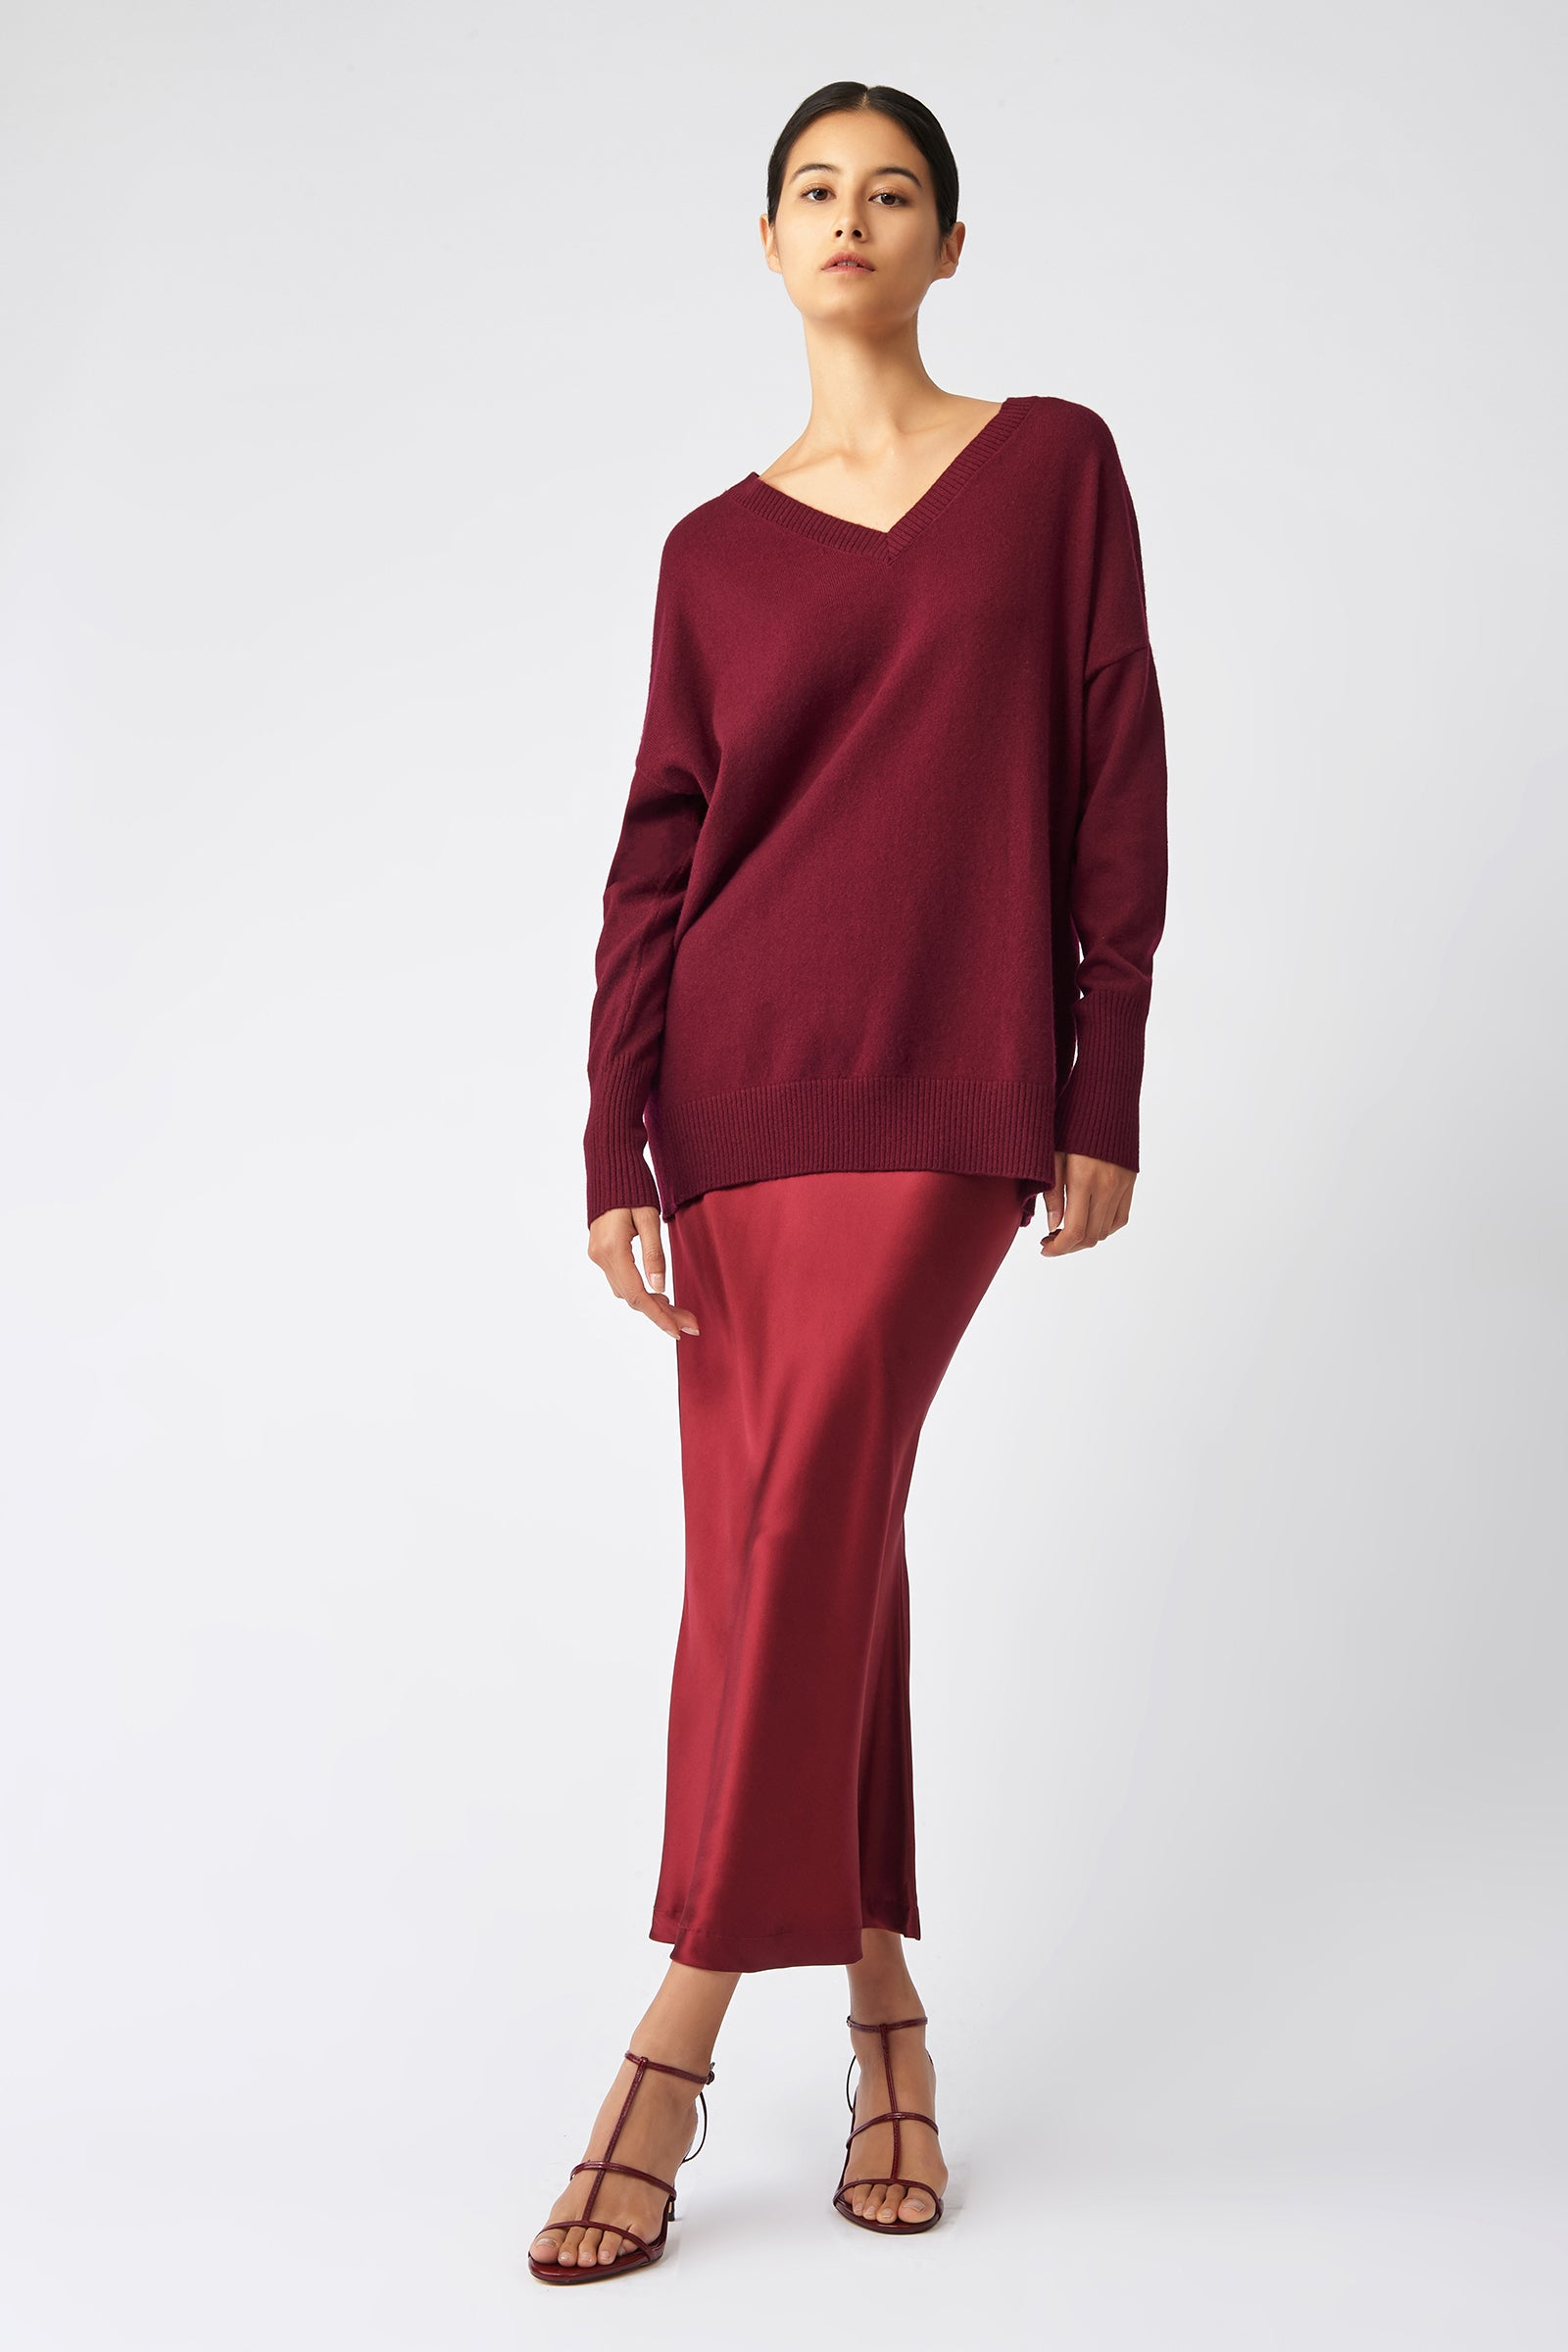 Kal Rieman Cashmere V Neck in Bordeaux on Model Full Front View